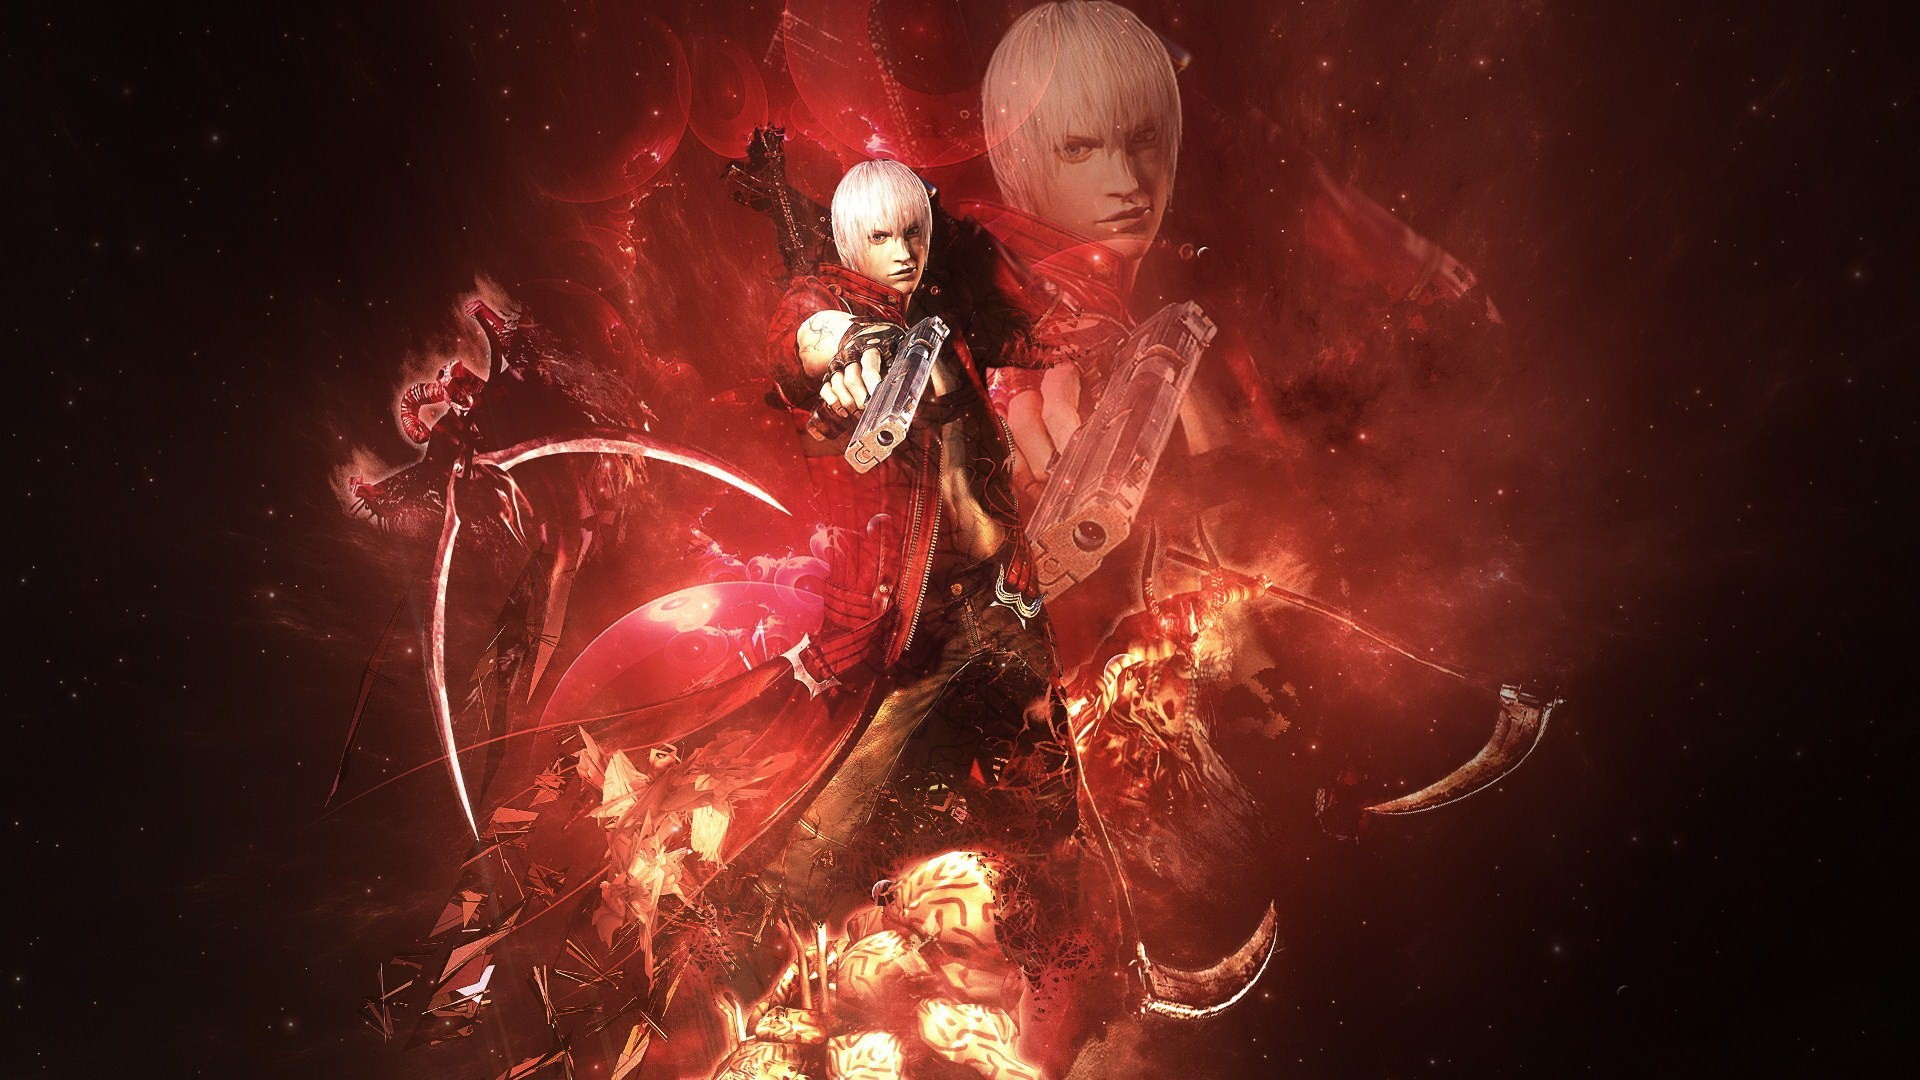 Dante Sparda of the game Devil May Cry